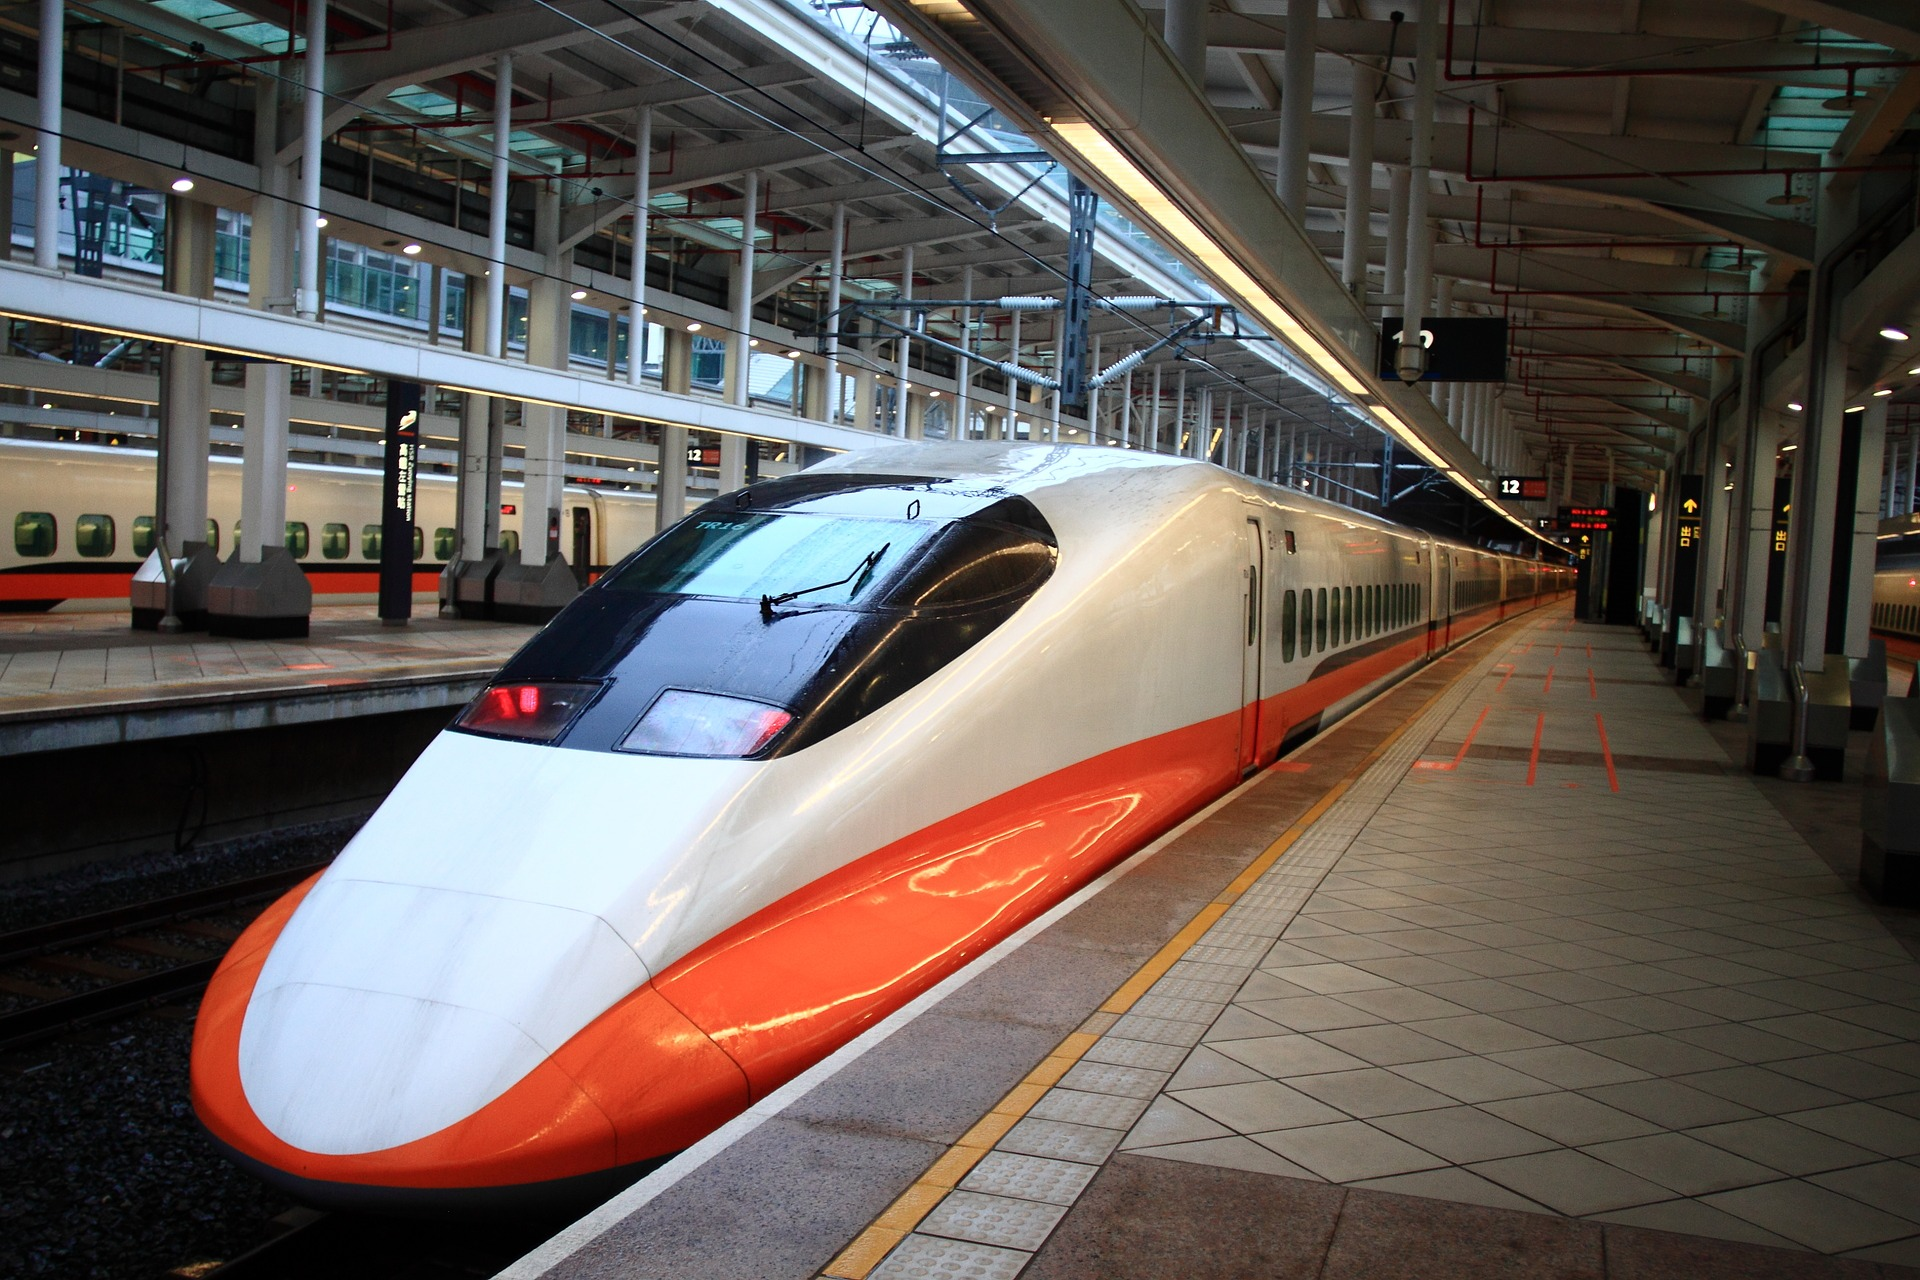 Global Intelligent Railway Transport System (IRTS) Market SWOT Analysis, Dynamics, Drivers, Key Indicators and Forecast 2020 to 2025